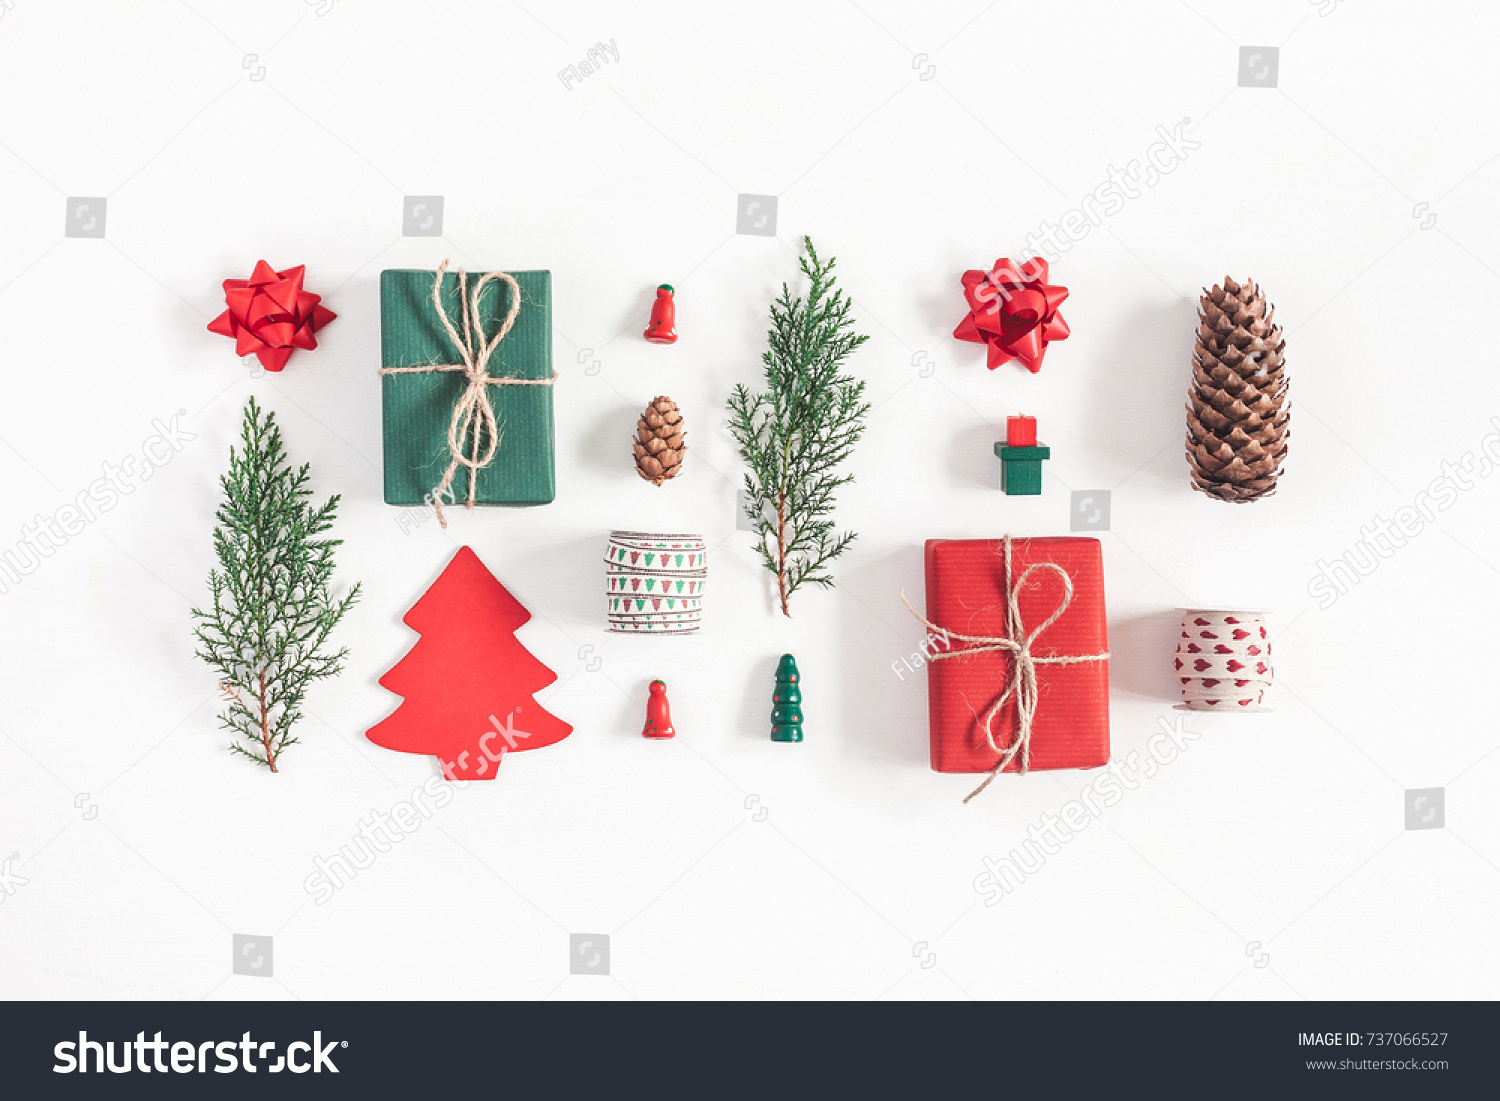 Christmas composition. Christmas gifts, pine branches, toys on white background. Flat lay, top view. #737066527